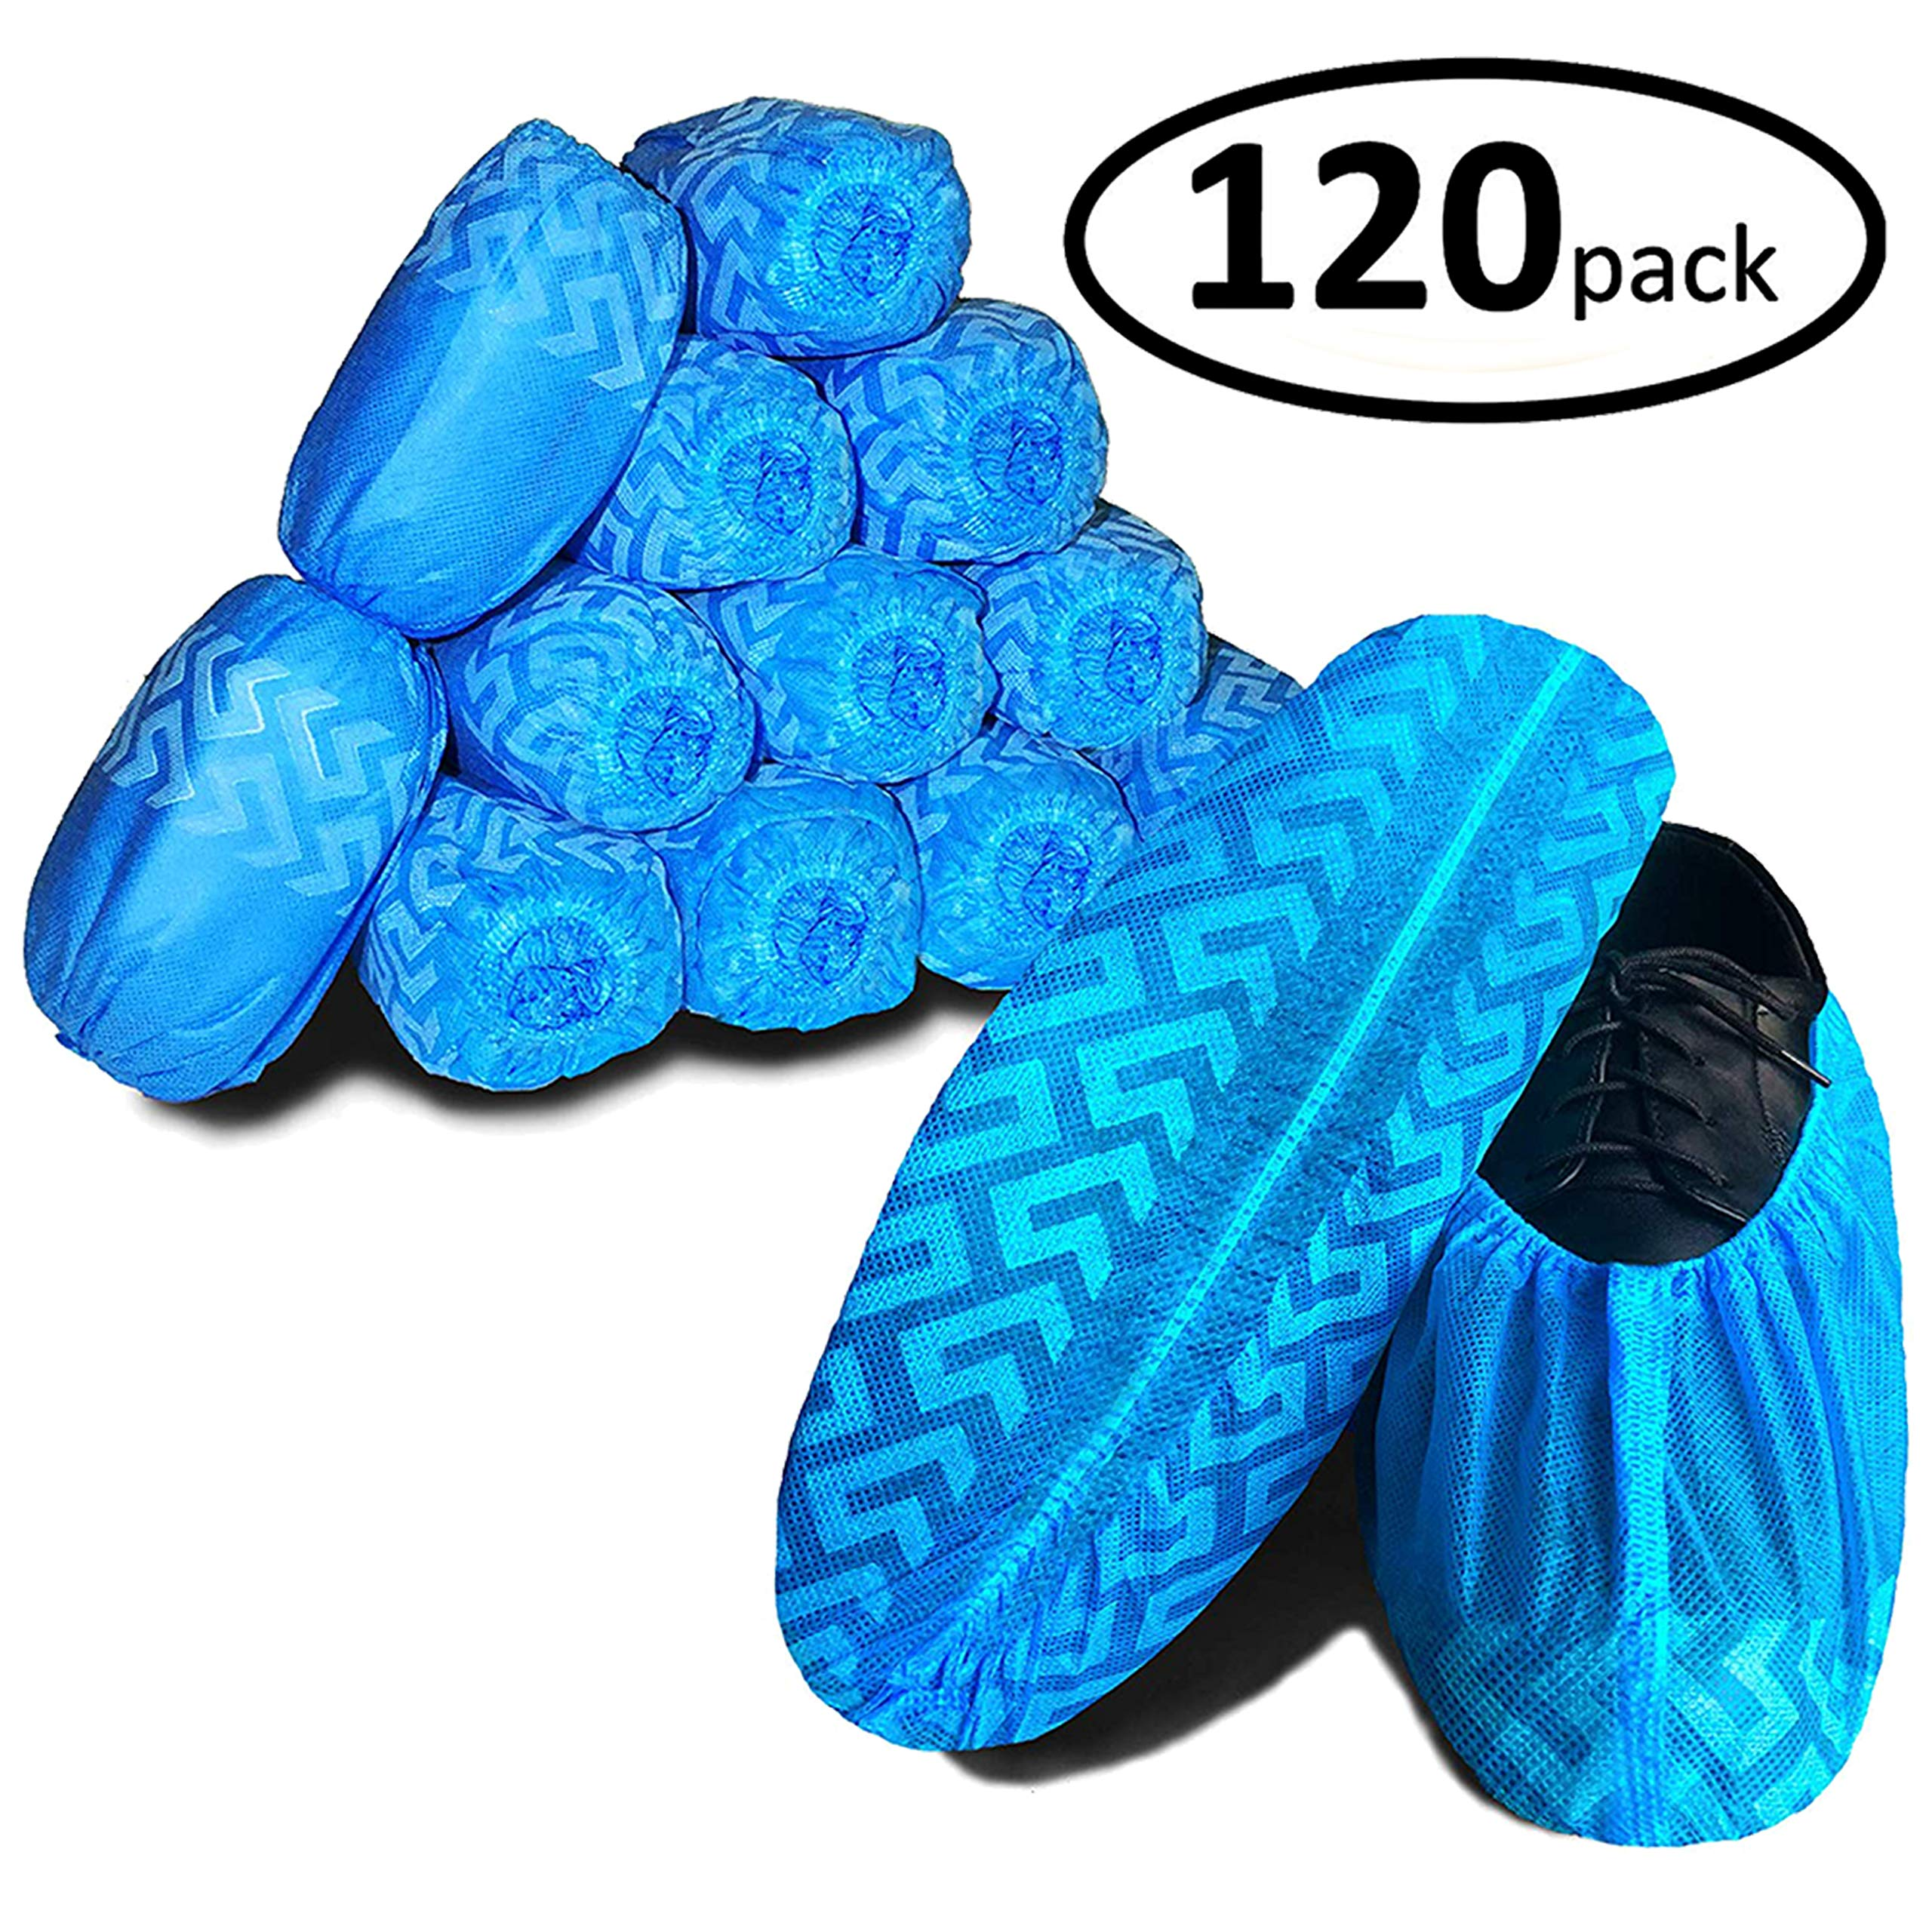 Sterile Field Non Slip Disposable Shoe Covers - Secure Elastic Fit, Large Size Fits All, Extra Durable Thickness, 120 Count